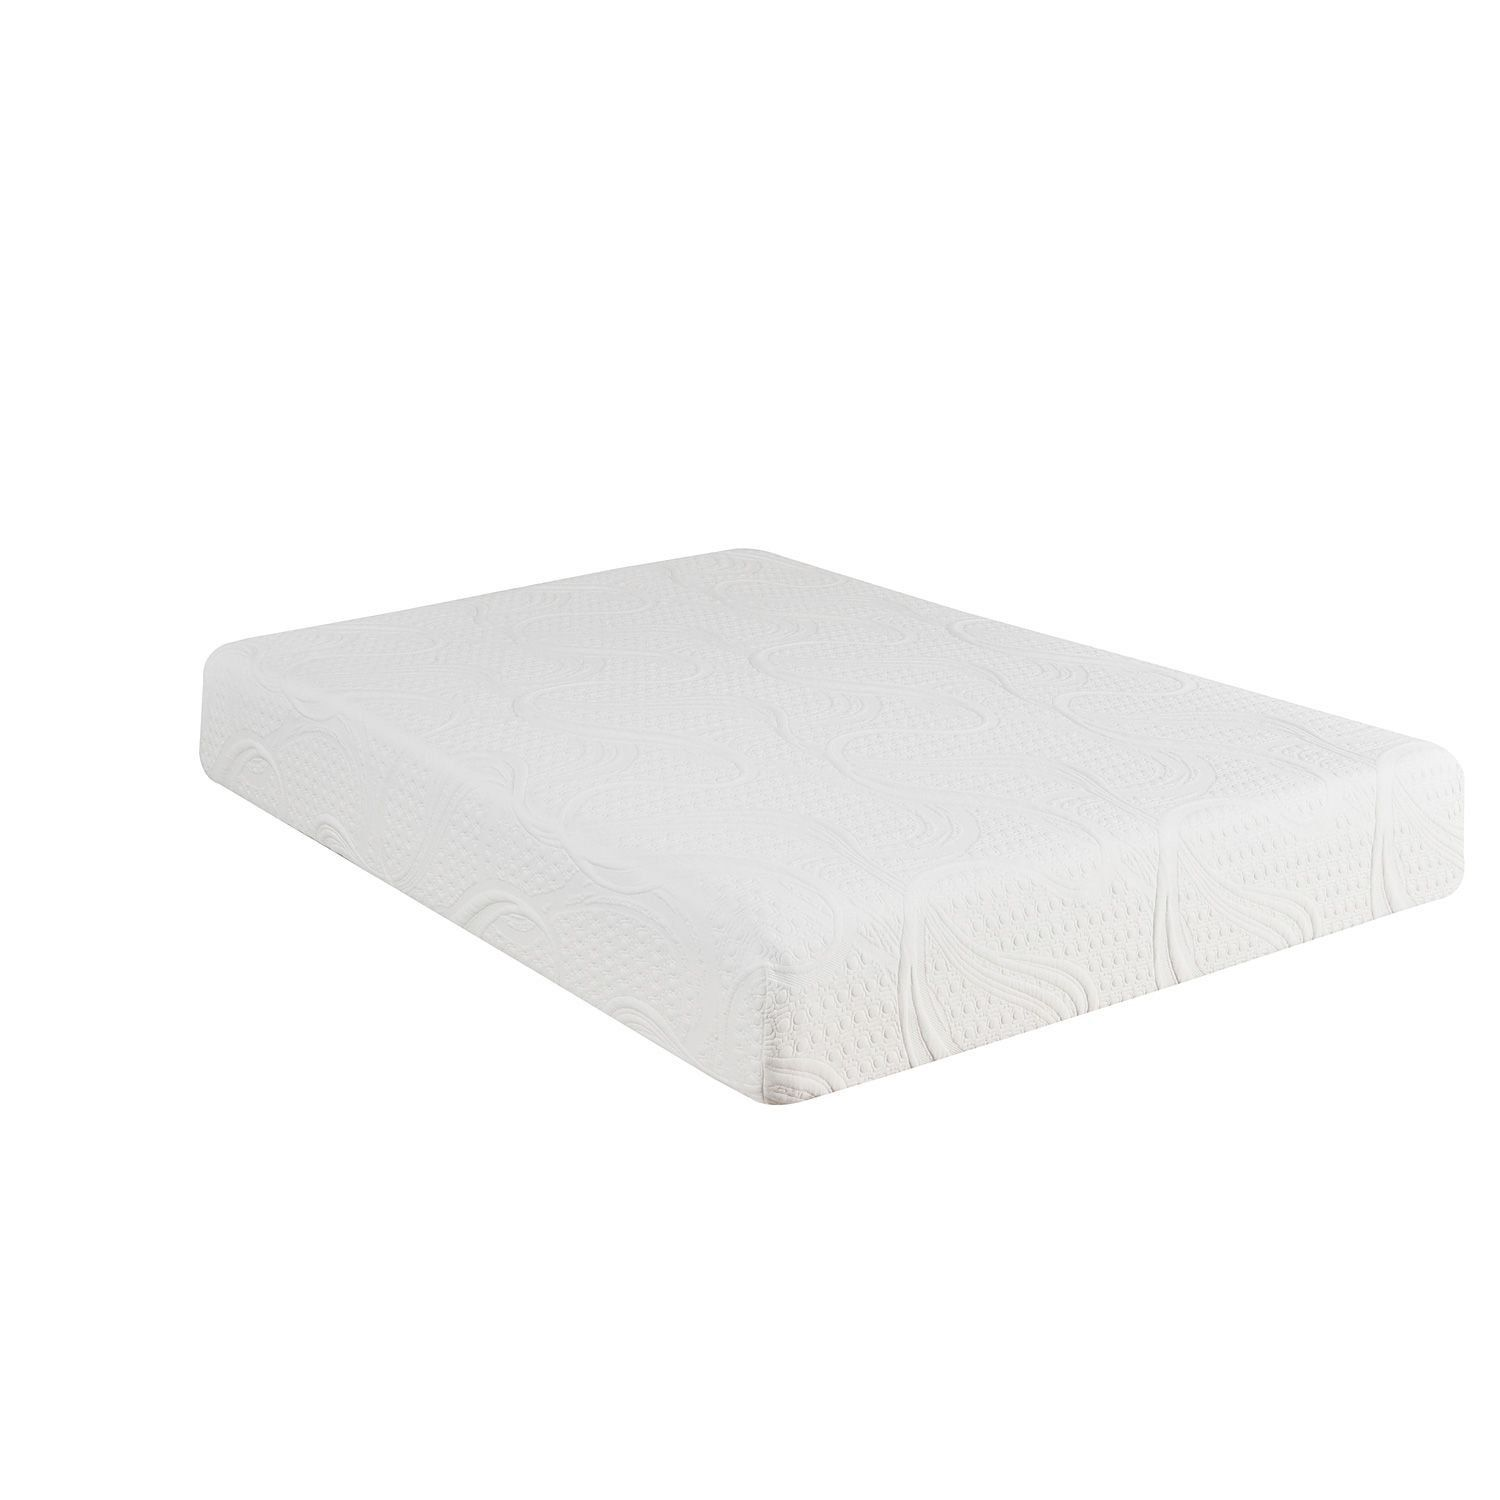 Best Full Size Mattress Set Top 10 Reviews In 2020